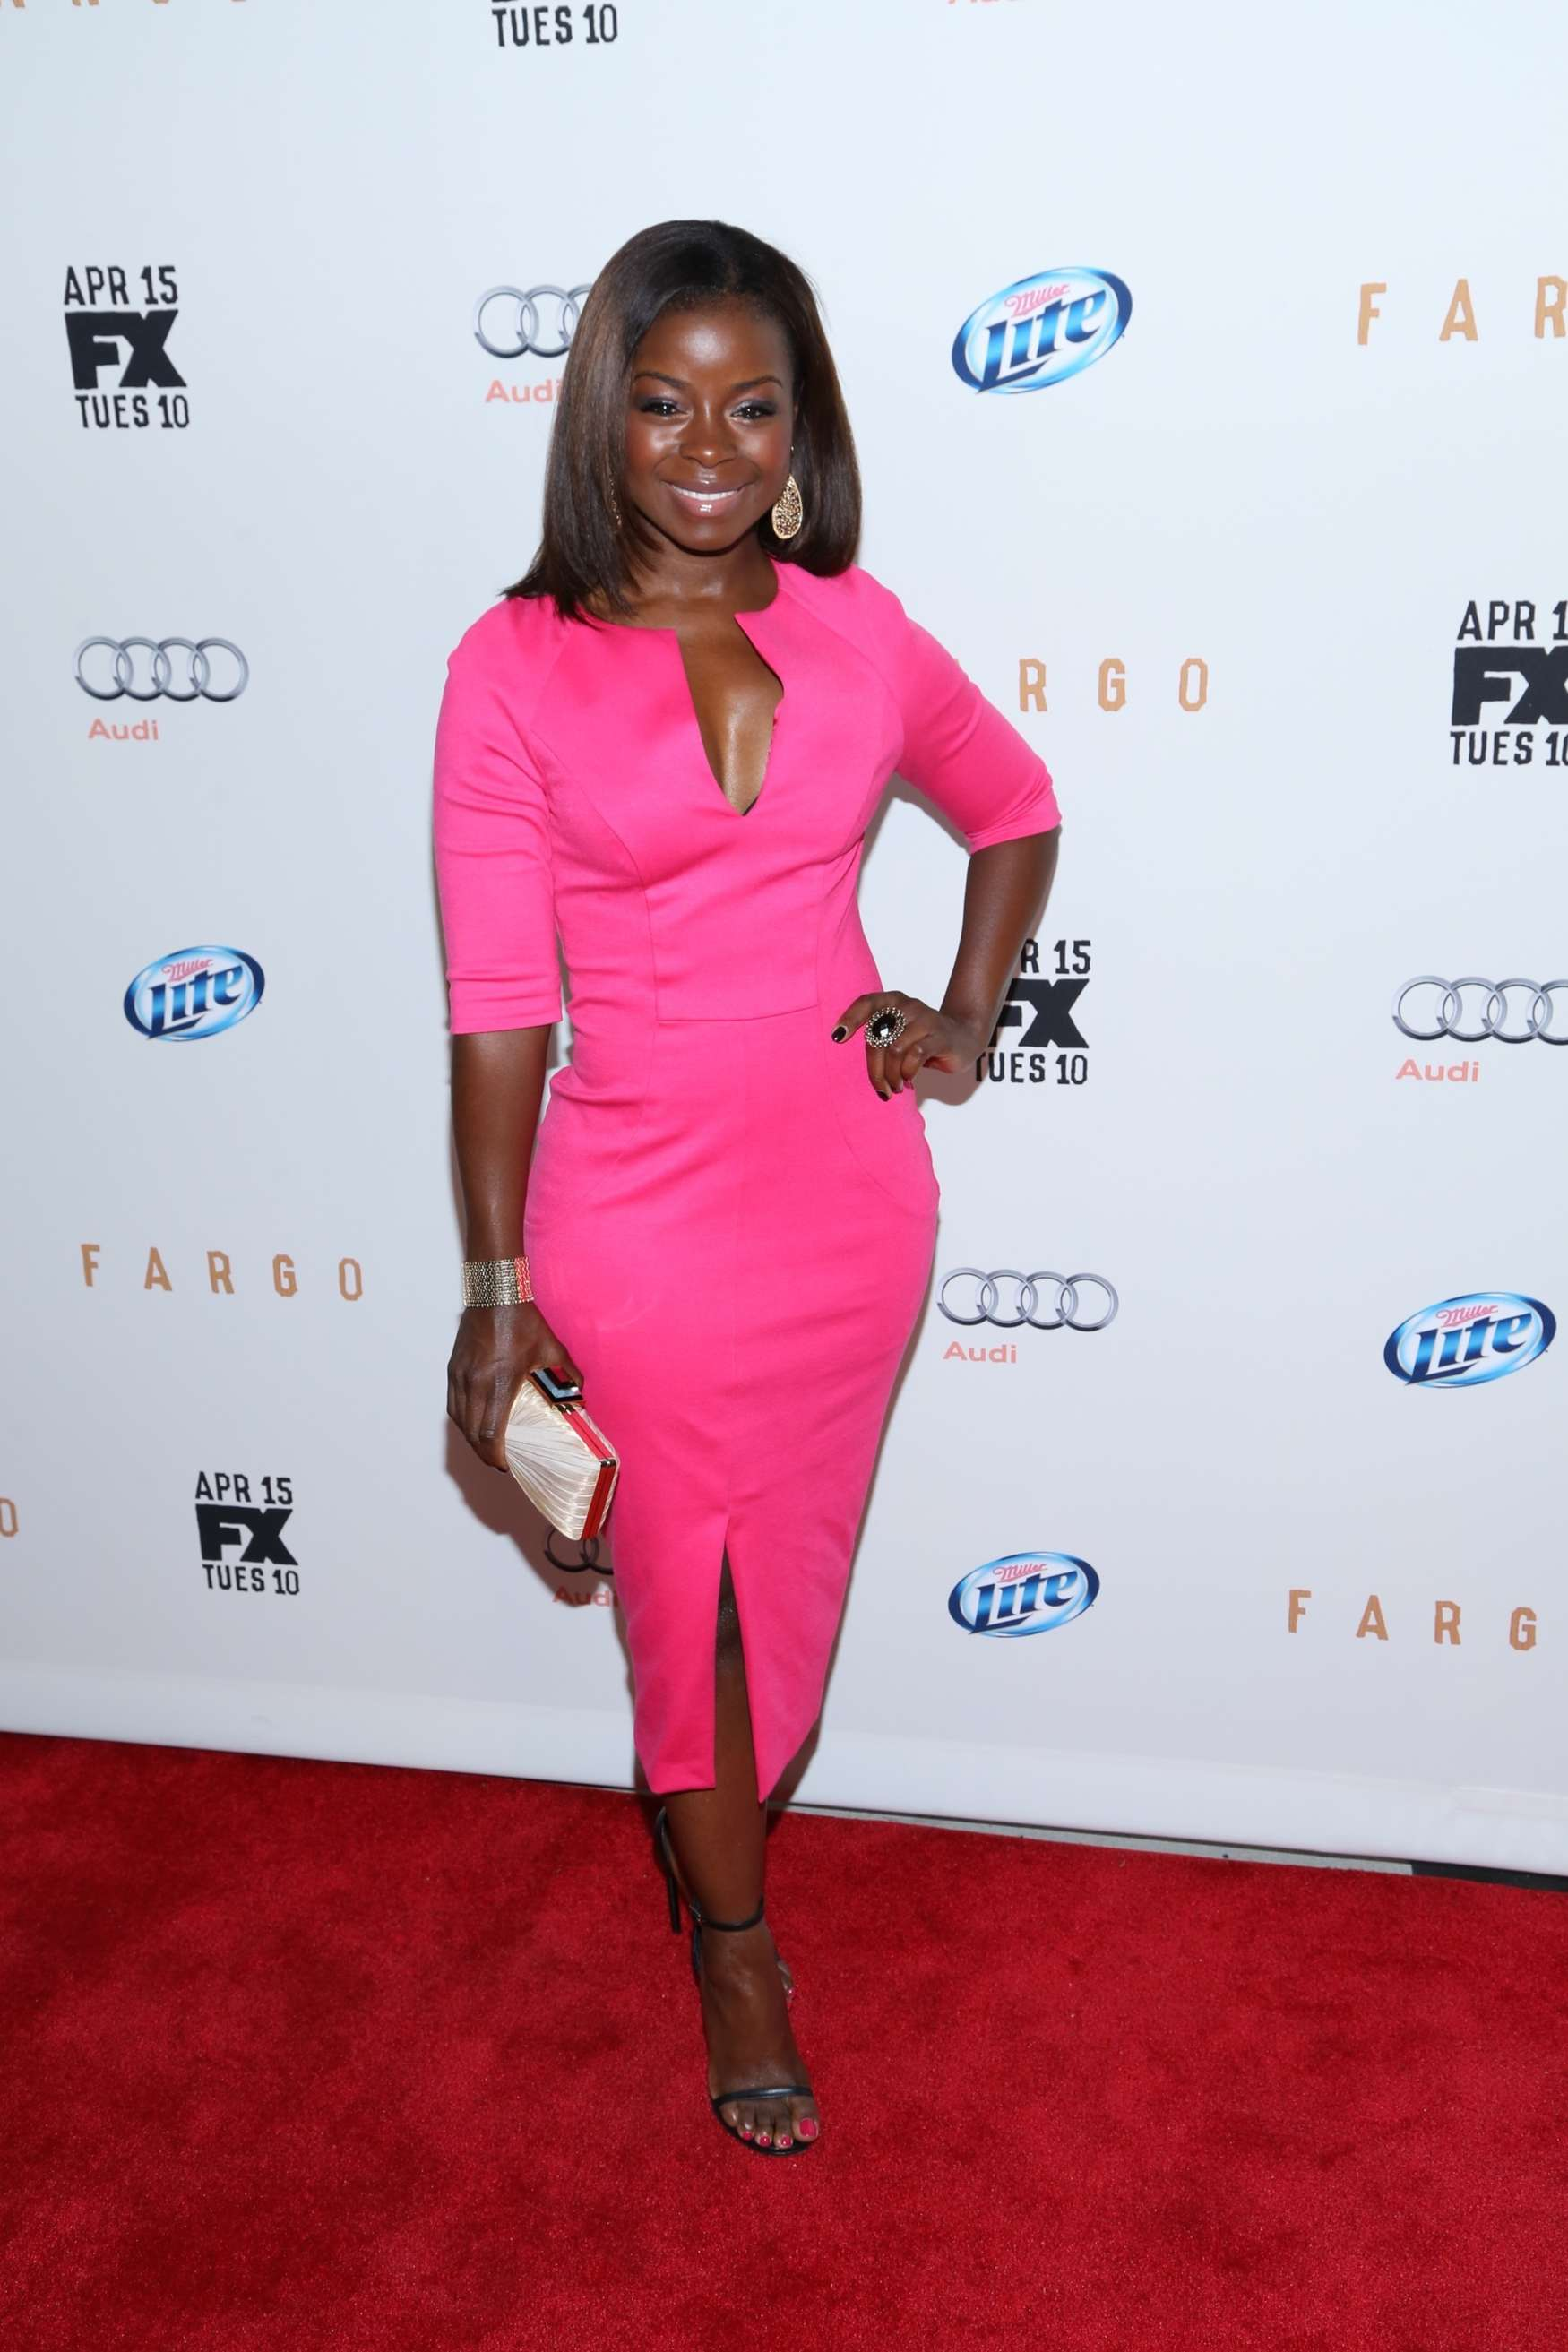 Erica Tazel Celebrity Wiki Onceleb Wiki Erica tazel can be seen using the following weapons in the following television series. celebrity wiki onceleb wiki